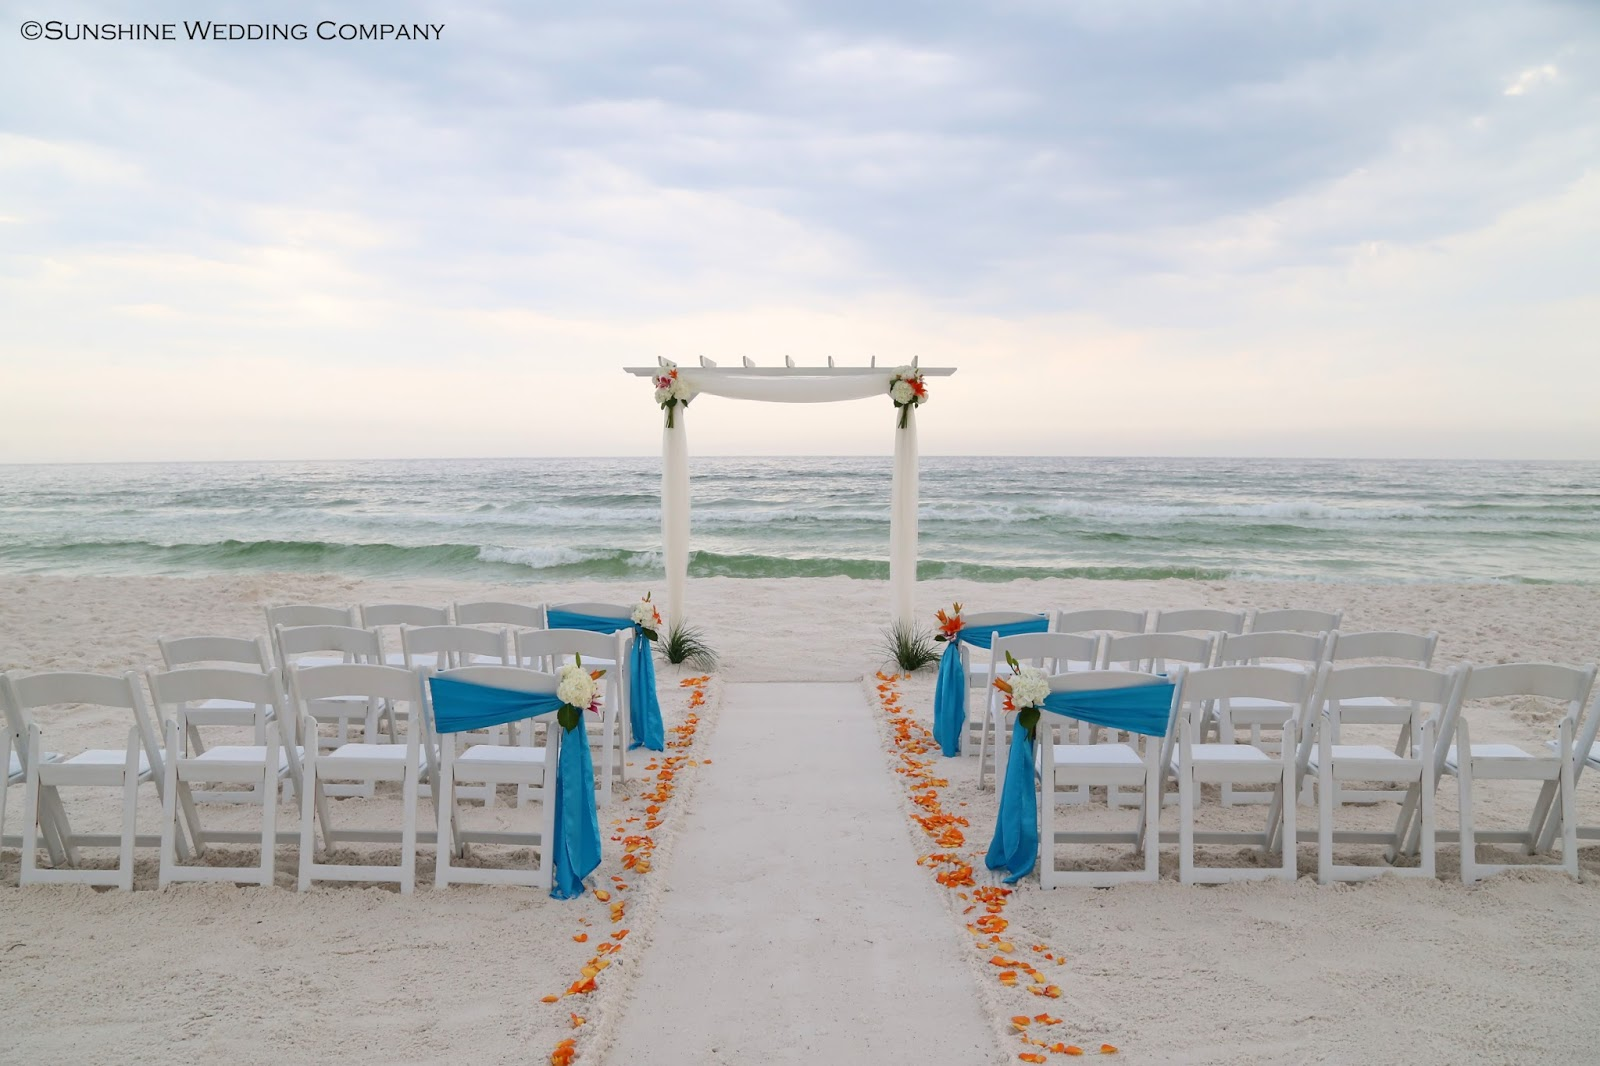 Fresh Flower Beach Wedding Decorations Malibu Blue Sashes And Orange Flowers For Your Destin